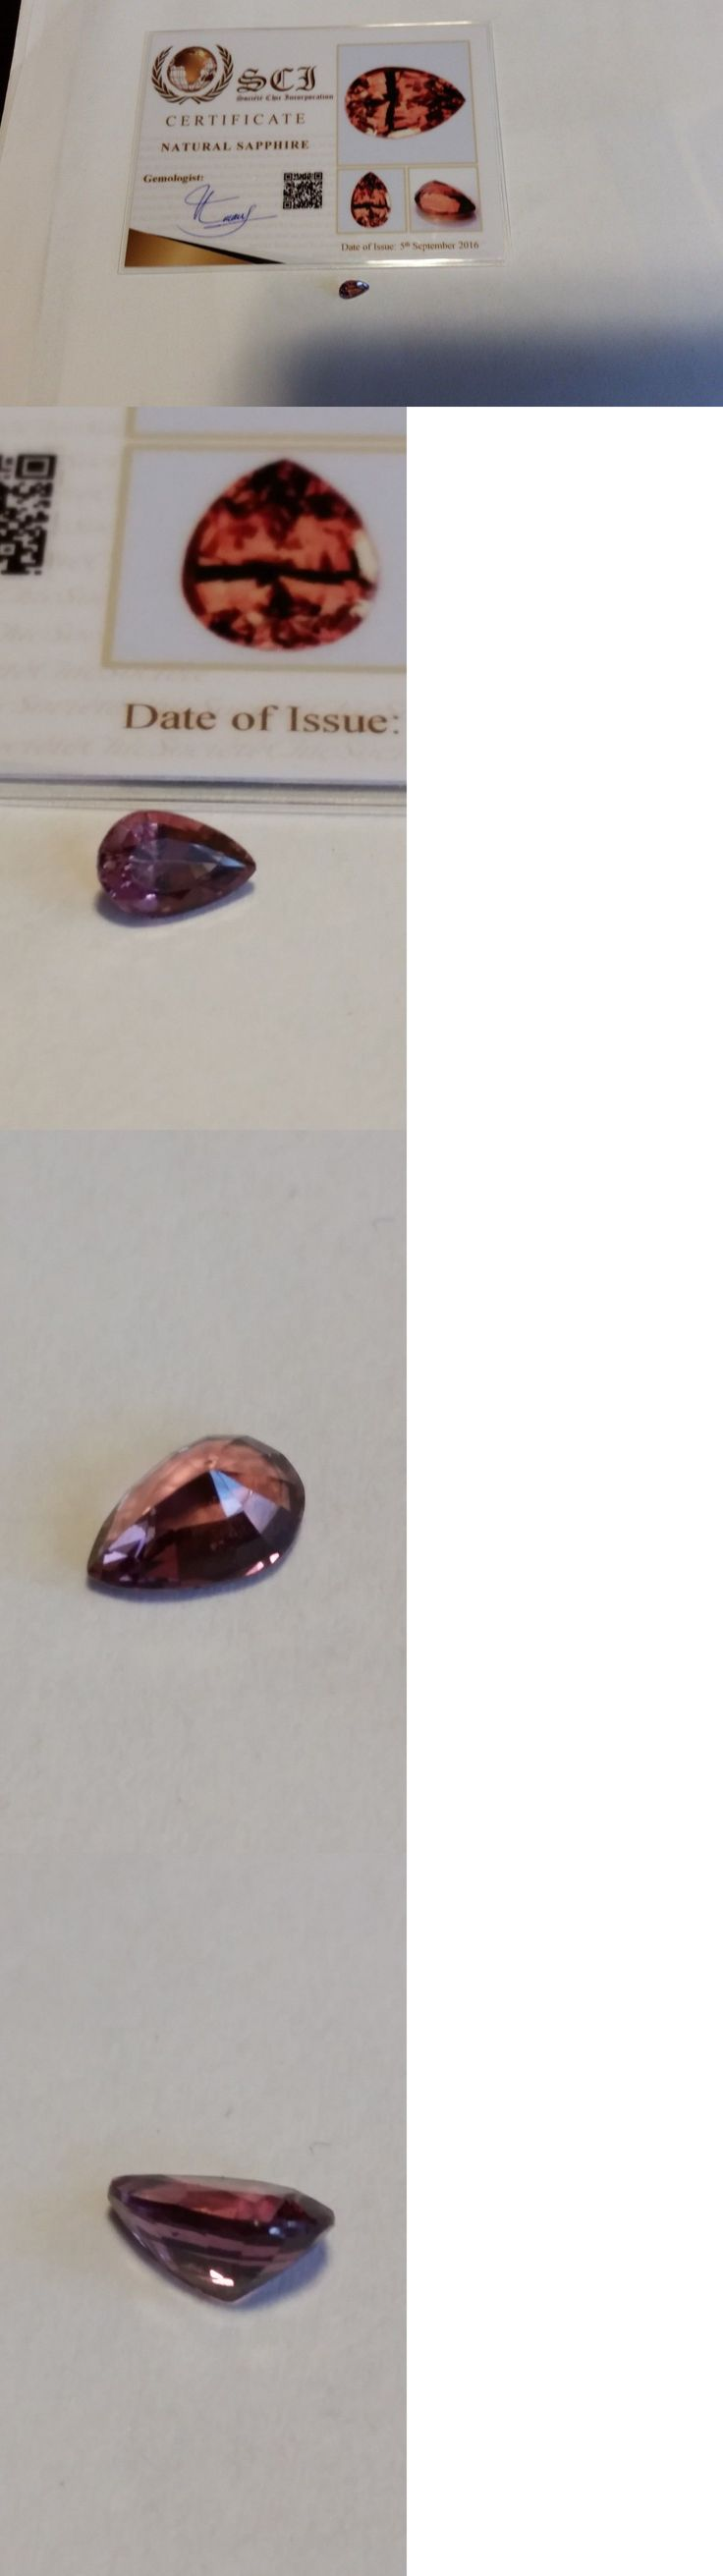 Natural Sapphires 4644: Natural Loose Peach Sapphire Pear Shape 1.05 Ct Madagascar Certified -> BUY IT NOW ONLY: $395 on eBay!